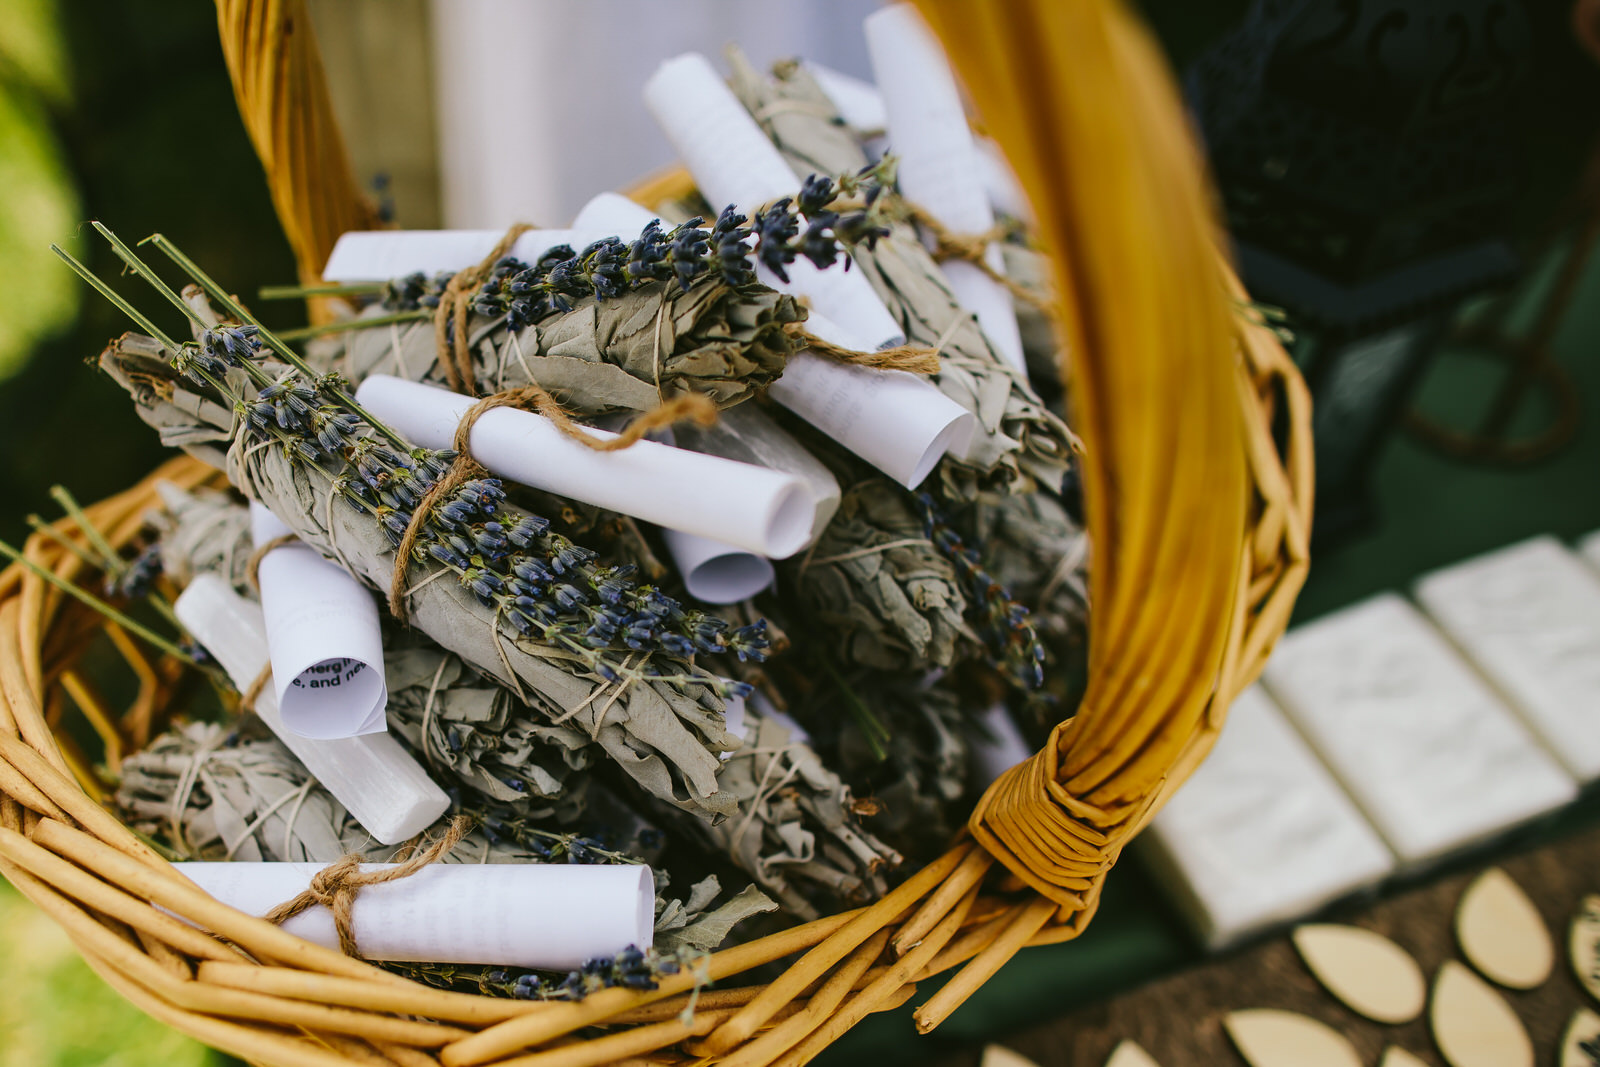 kashi-wedding-reception-tiny-house-photo-guest-gifts-sage-selenite-witchy-wedding-favors.jpg